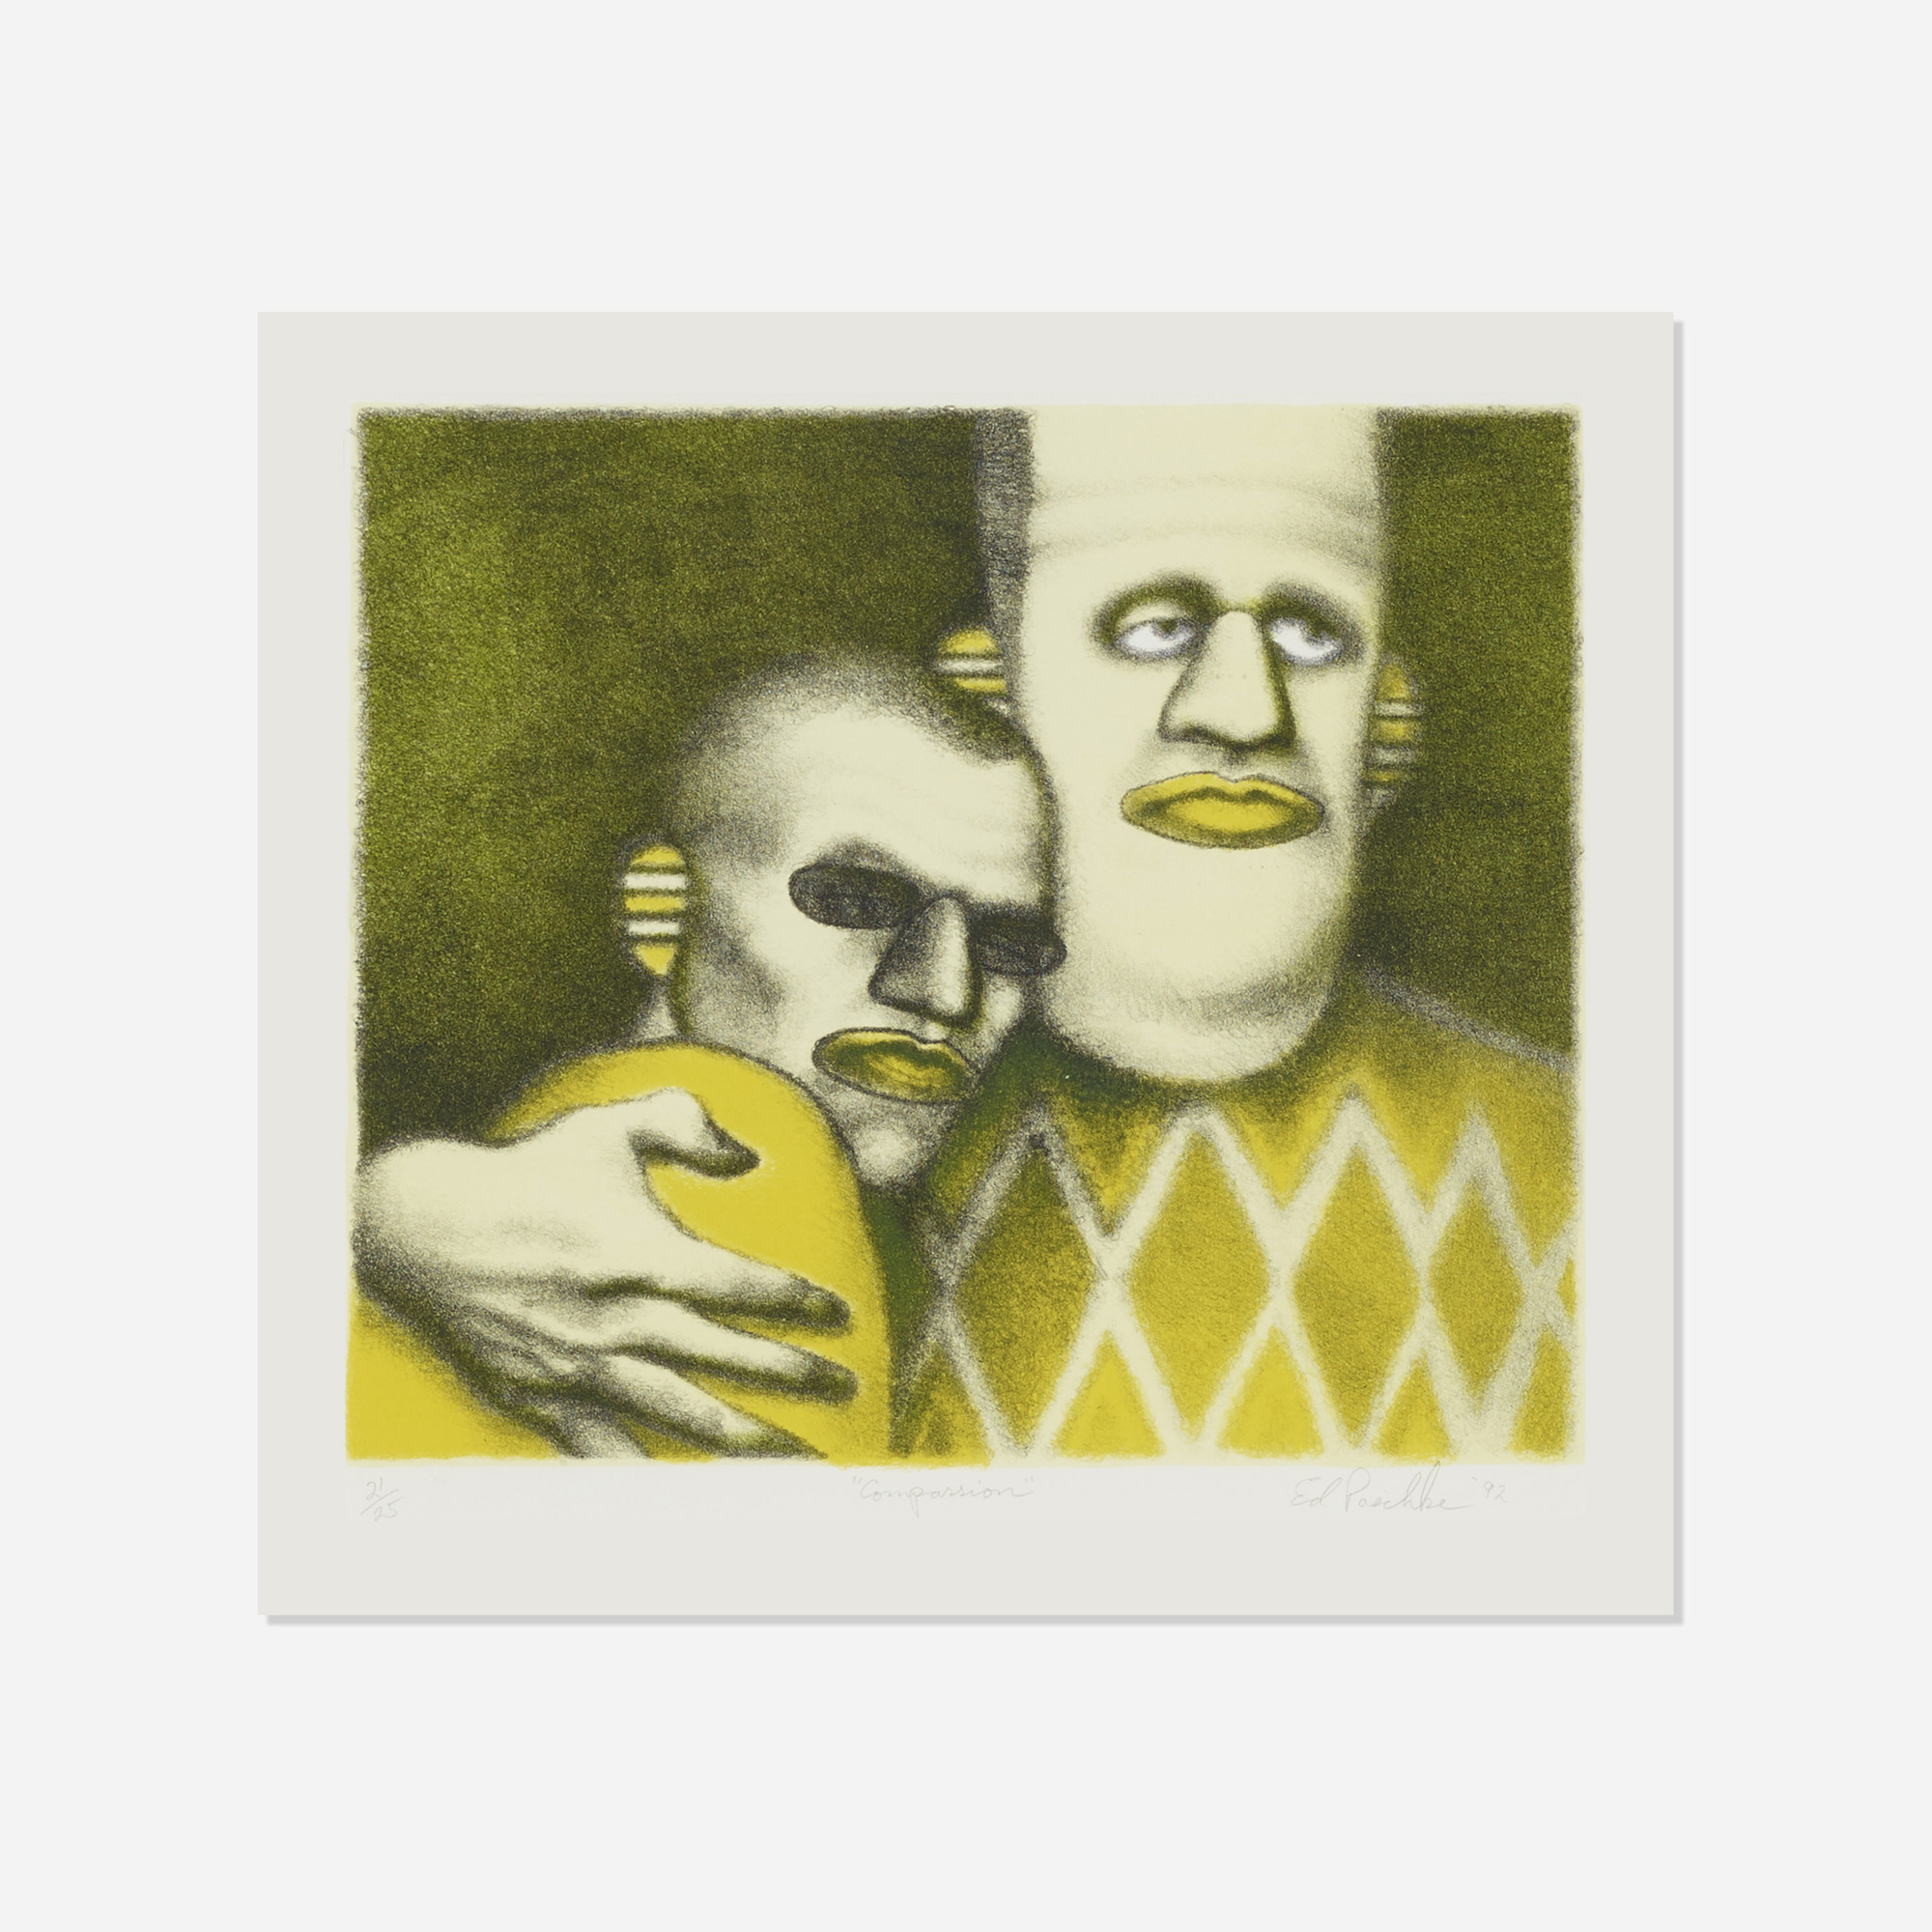 159: Ed Paschke / Compassion (1 of 1)